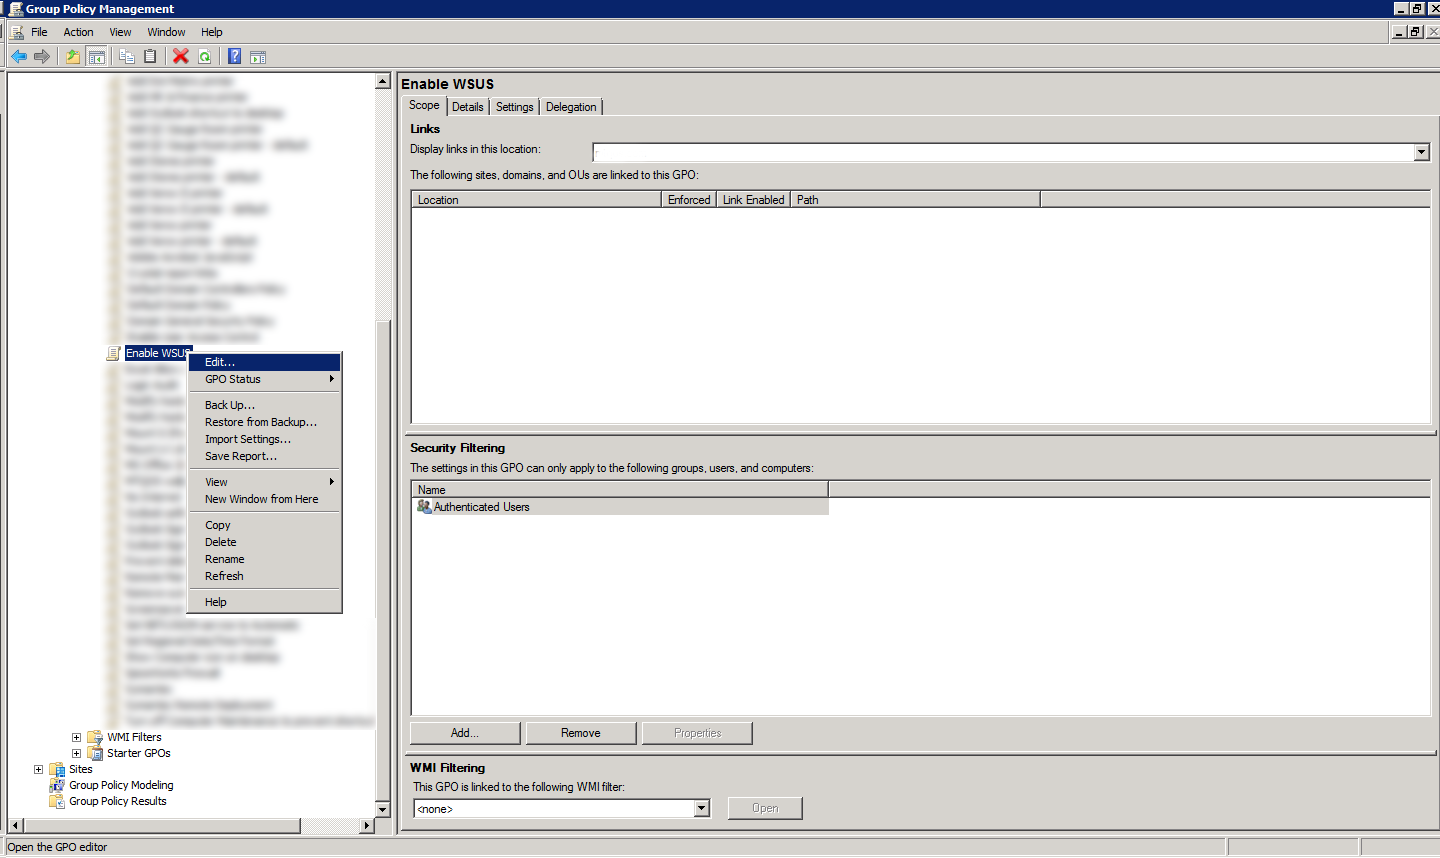 wsus_server_2012_wiseindy_40